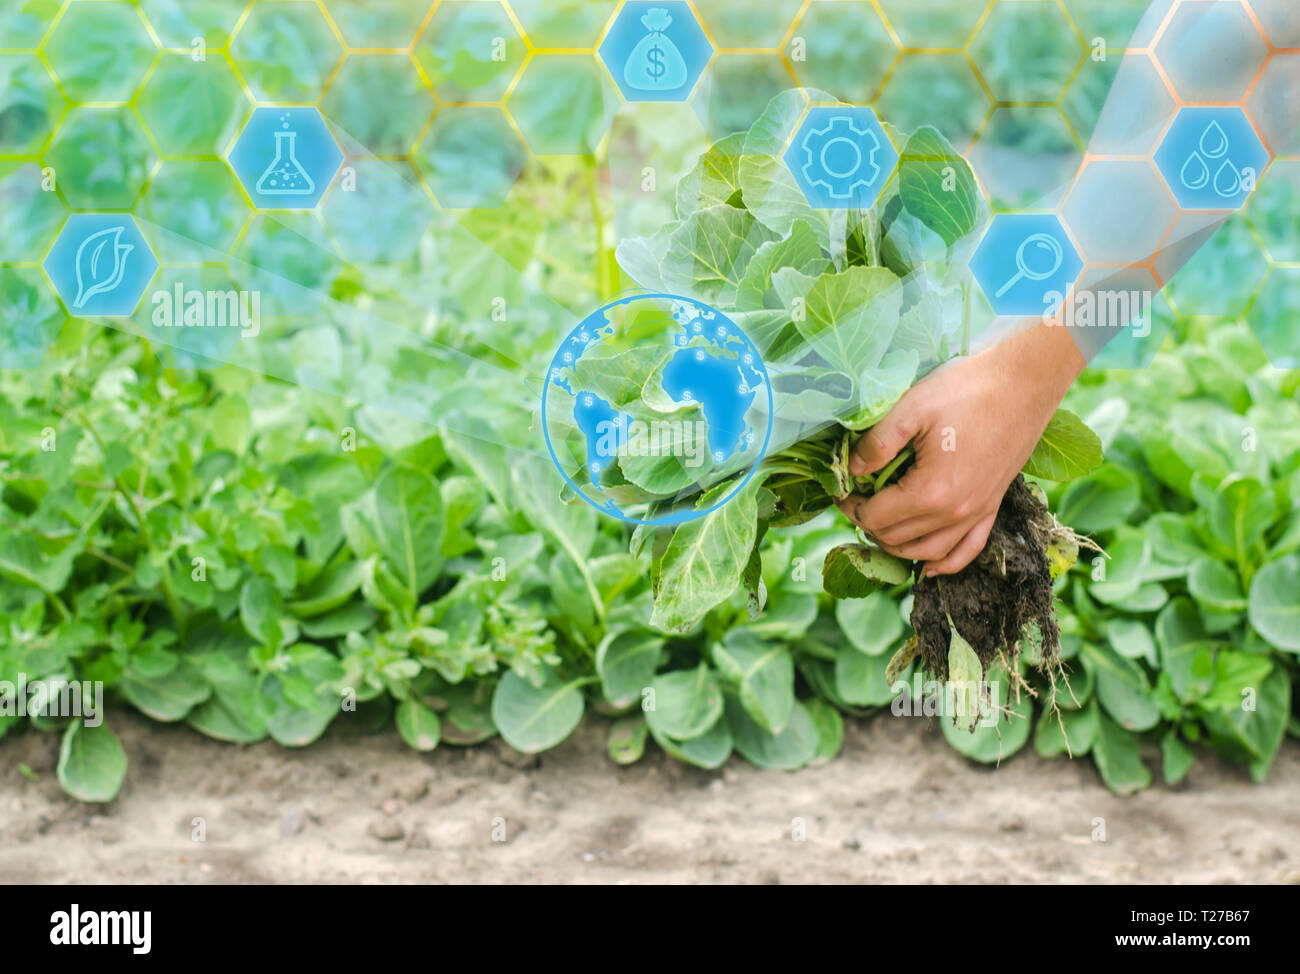 the farmer is holding cabbage seedlings ready for planting in the field. farming, agriculture, vegetables, agroindustry. Innovations in agriculture. H - Stock Image